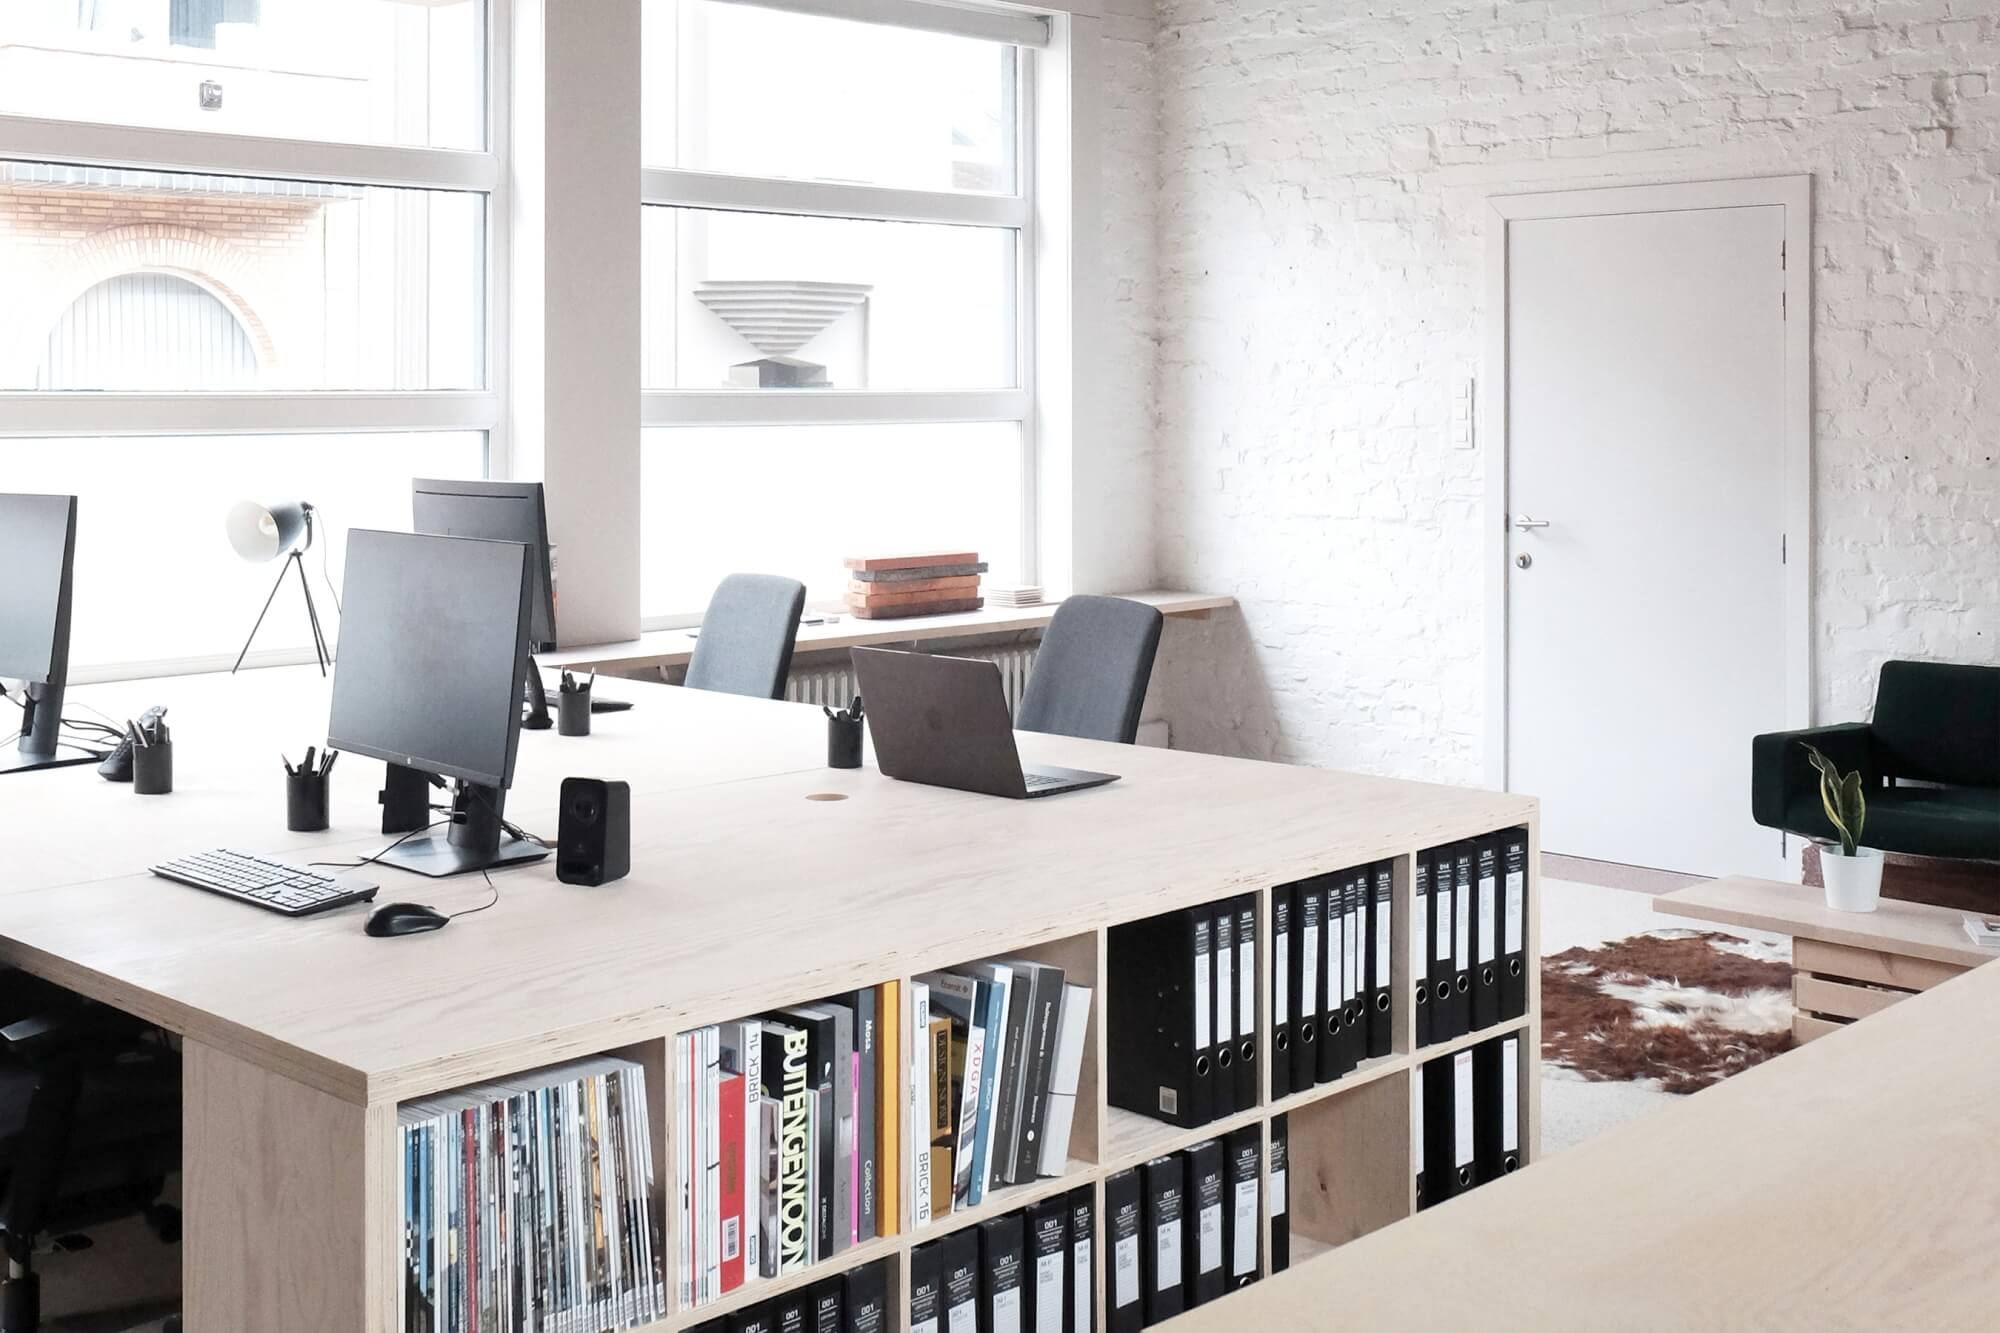 Open office space with plywood bookshelves and desk.